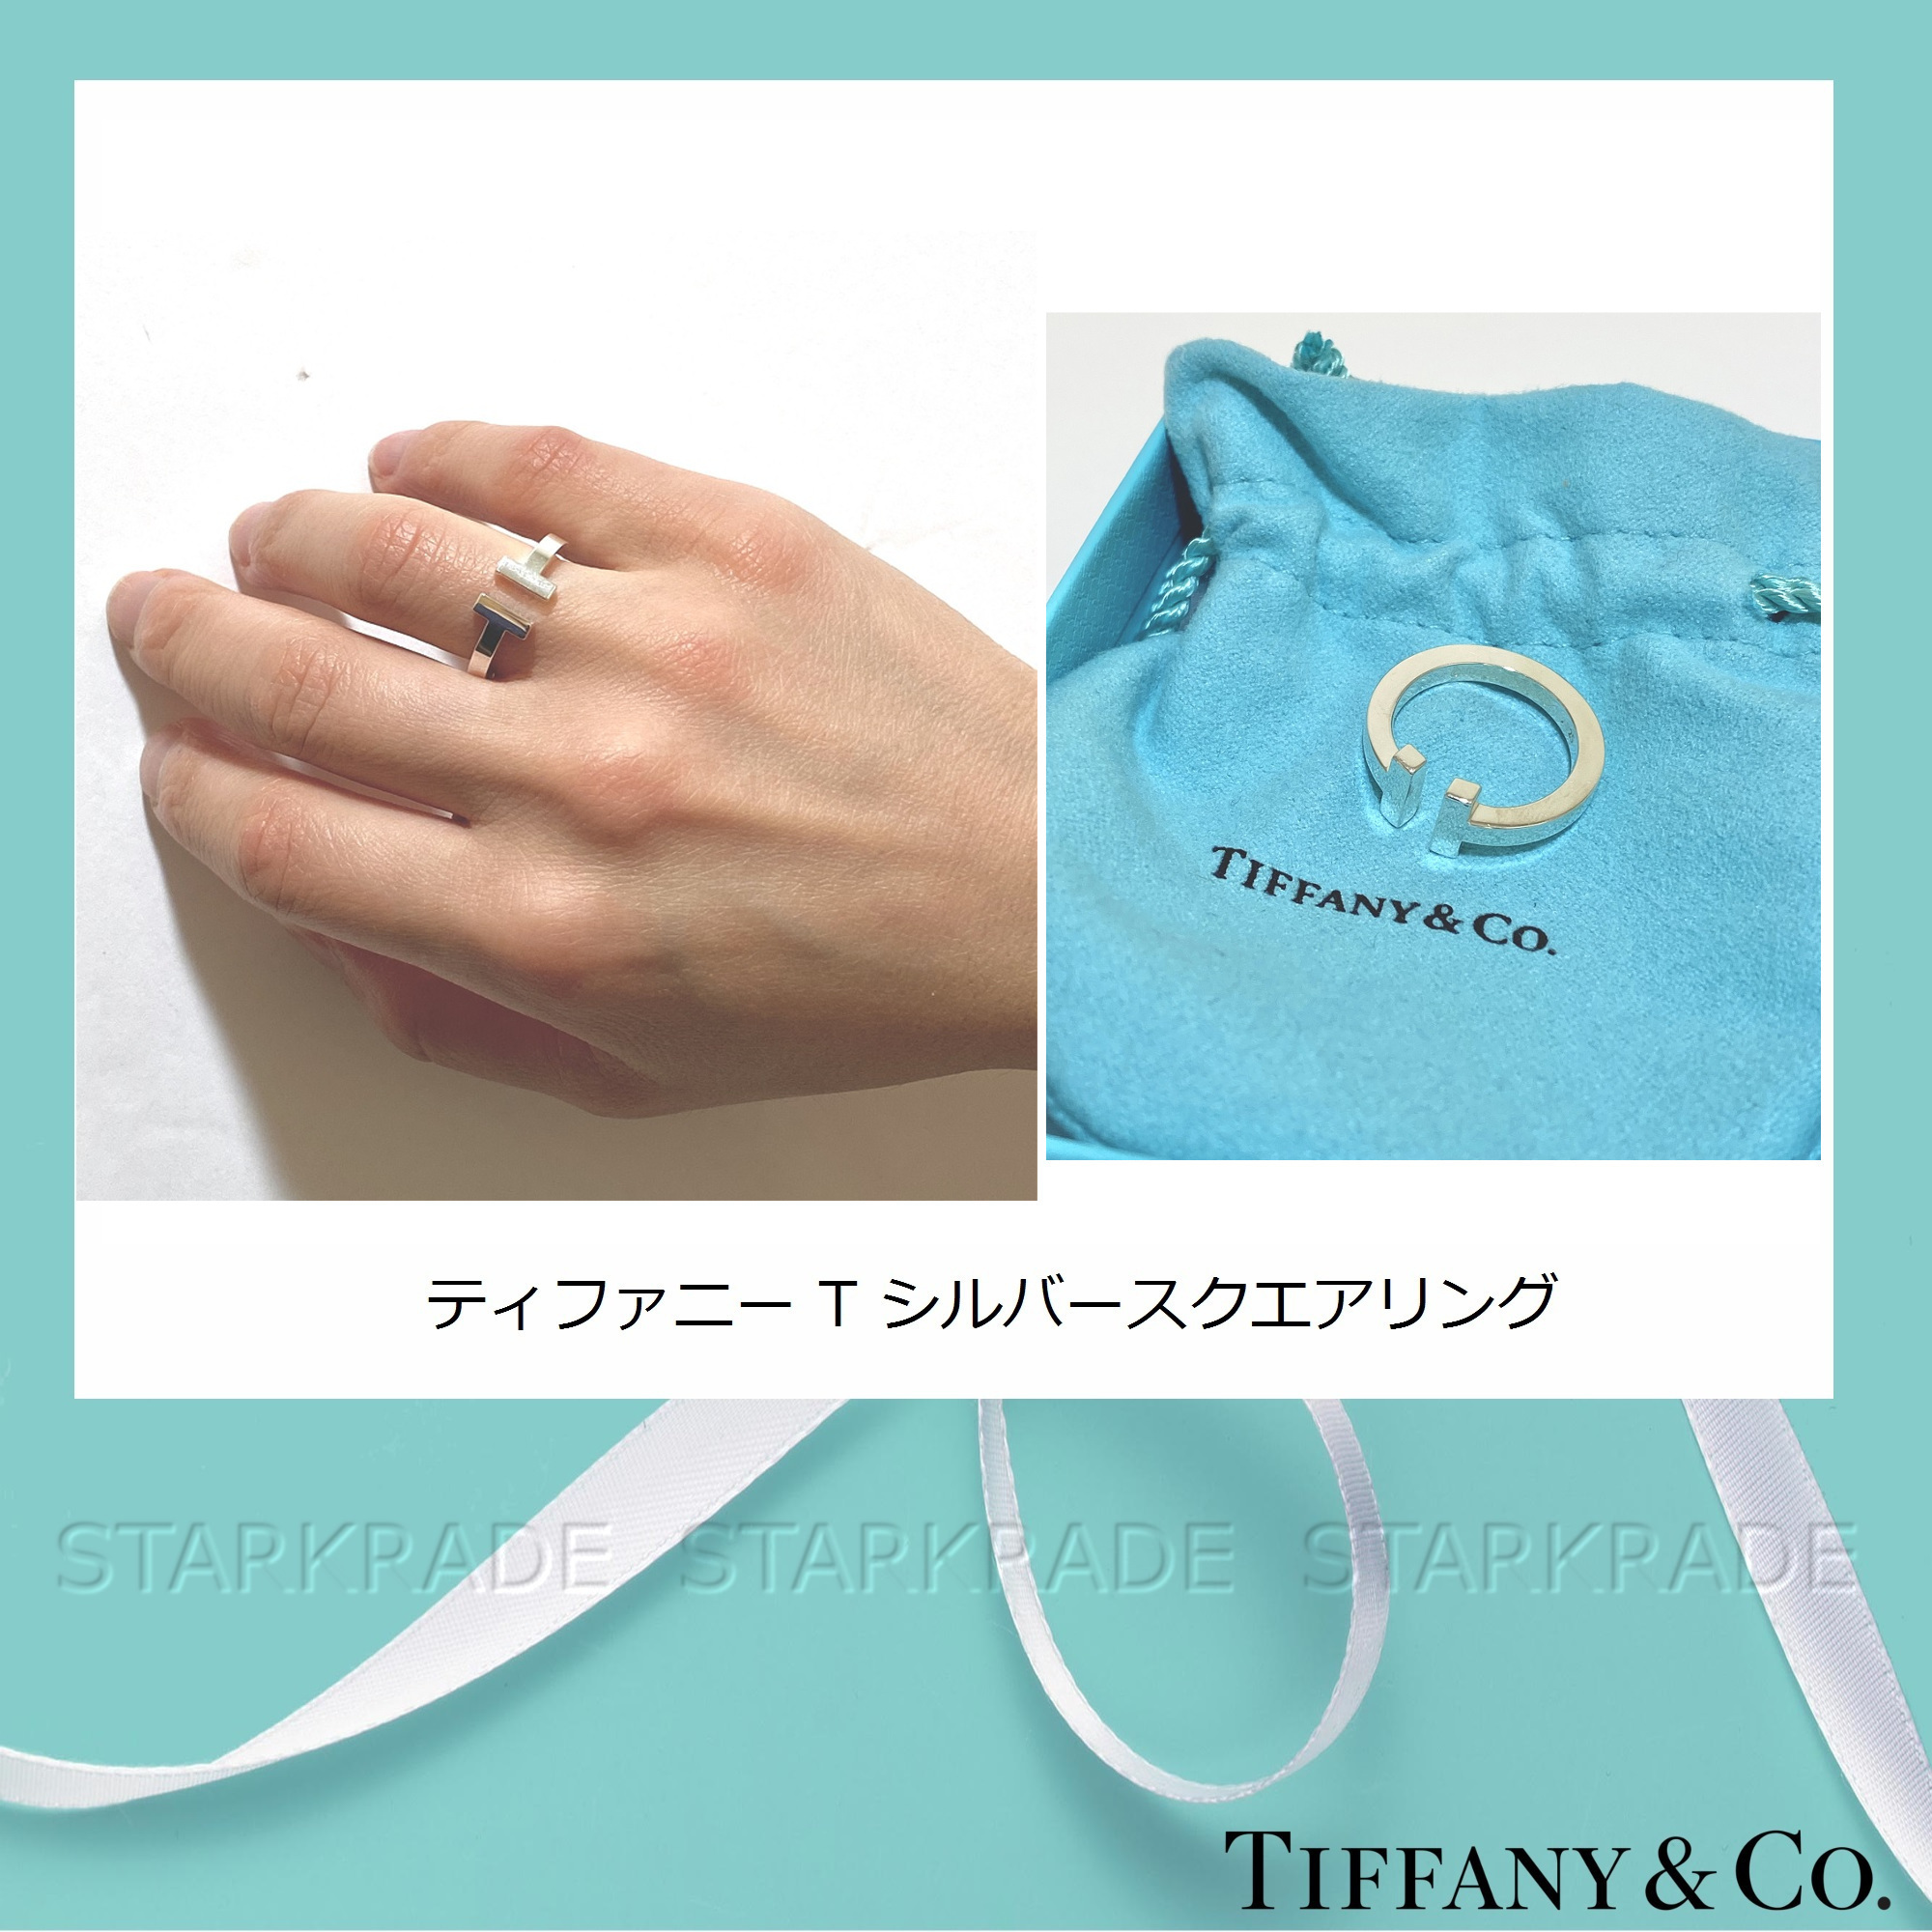 shop anybelle tiffany & co